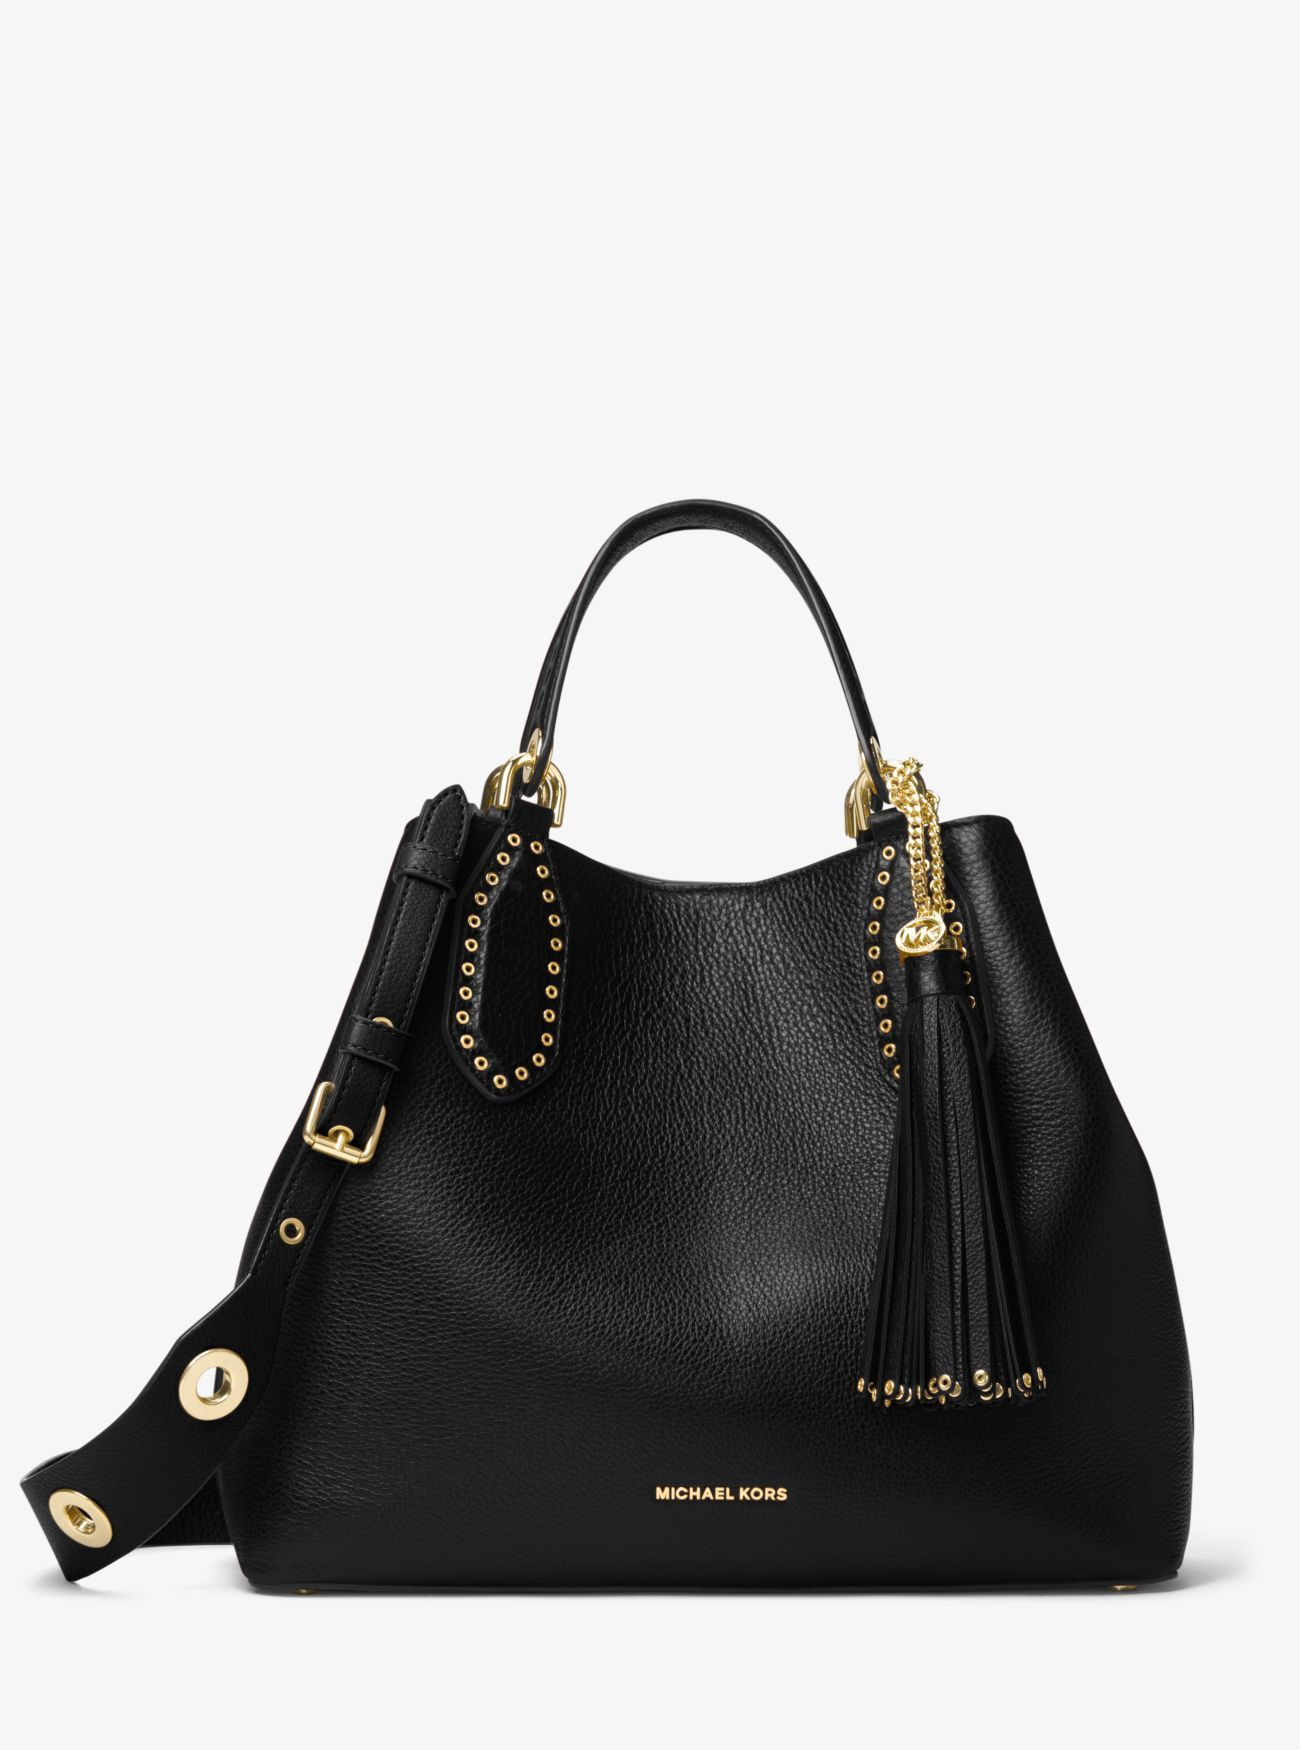 c2431942b5a1 Michael Kors Brooklyn Large Leather Satchel - Black in 2019 ...